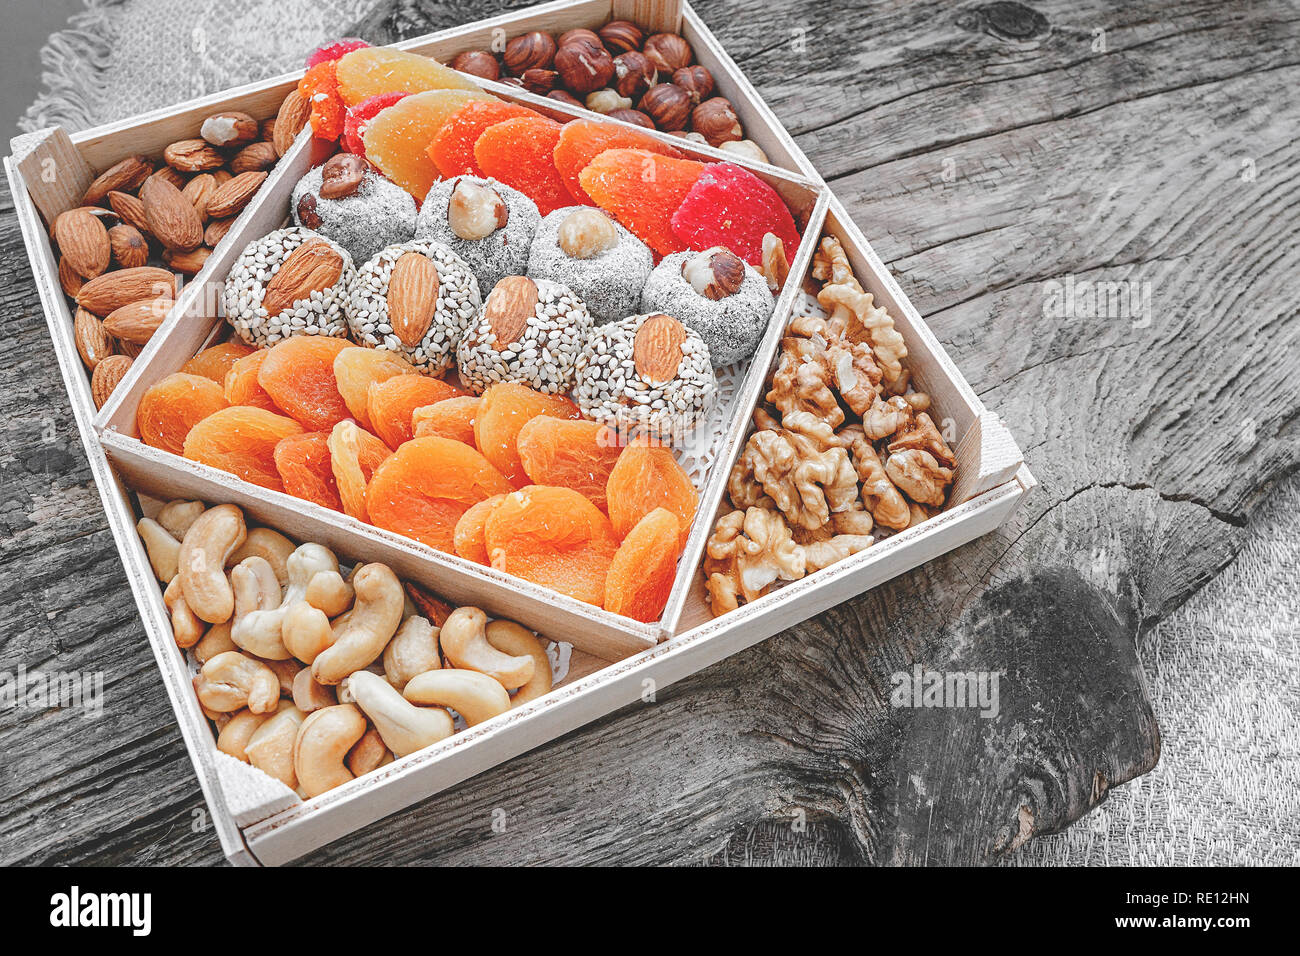 Turkish delight oriental sweets dried fruits and nuts in a wooden box. Background. Healthy vegan food. Natural food. Selective focus. Copy space. Stock Photo